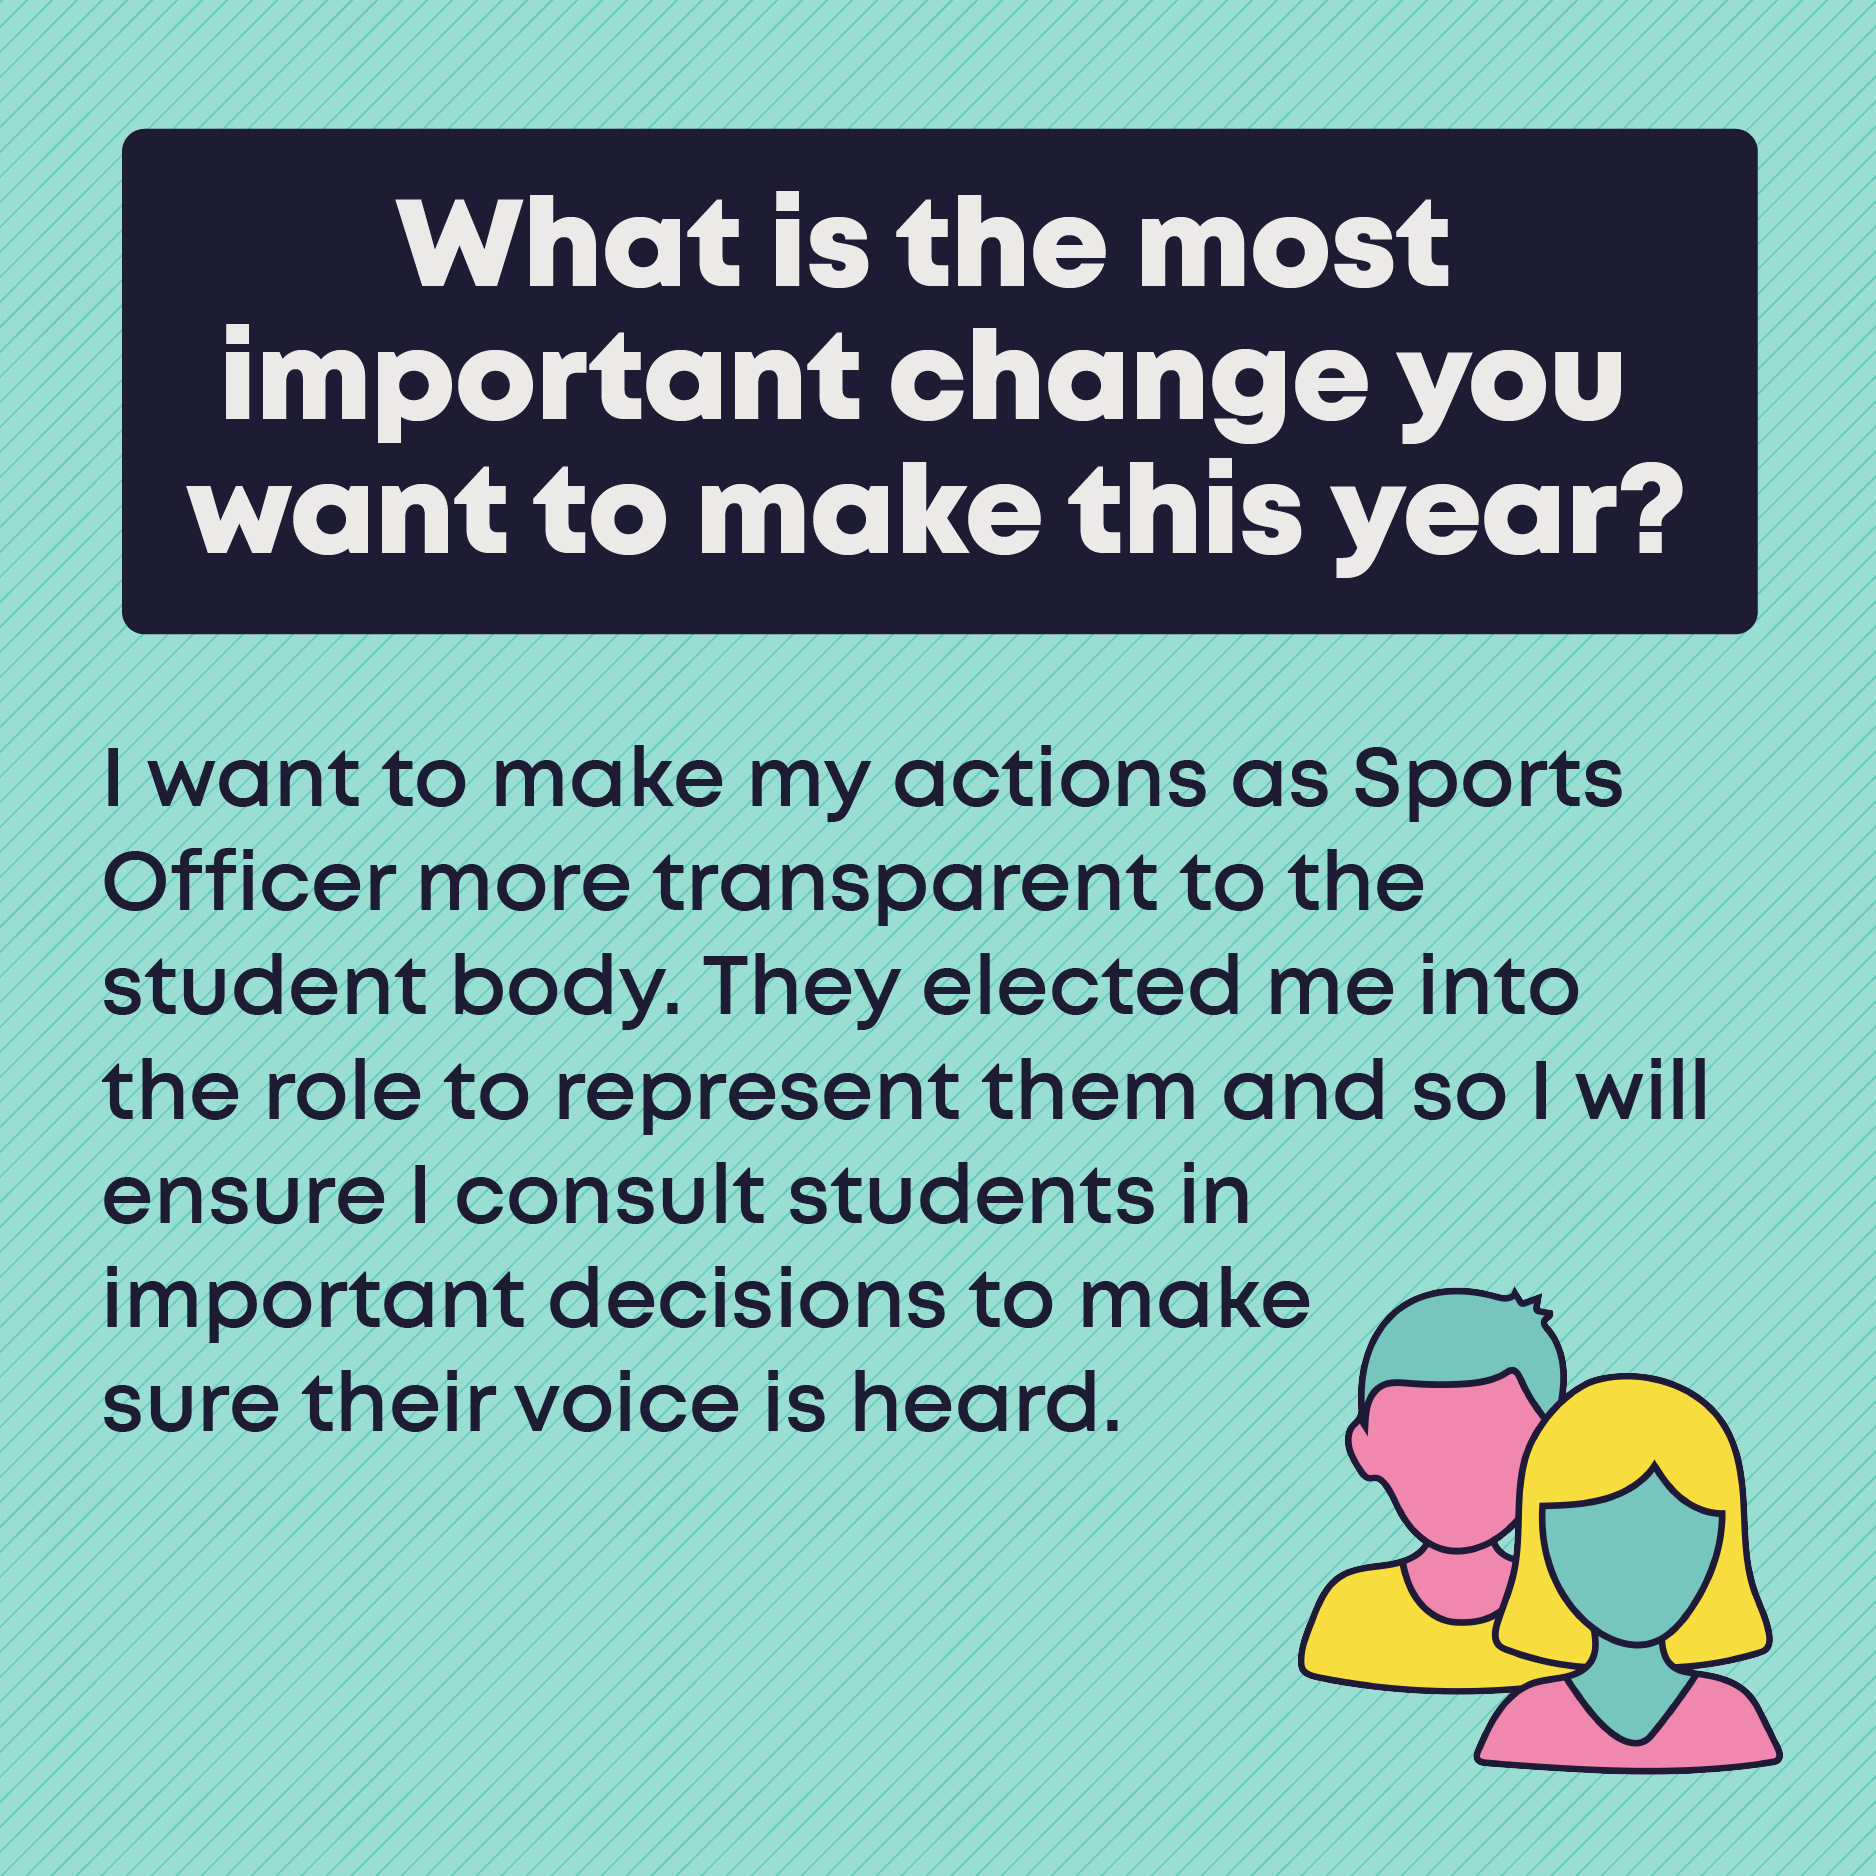 What is the most important change you want to make this year? I want to make my actions as Sports Officer more transparent to the student body. They elected me into the role to represent them and so I will ensure I consult students in important decisions to make sure their voice is heard.